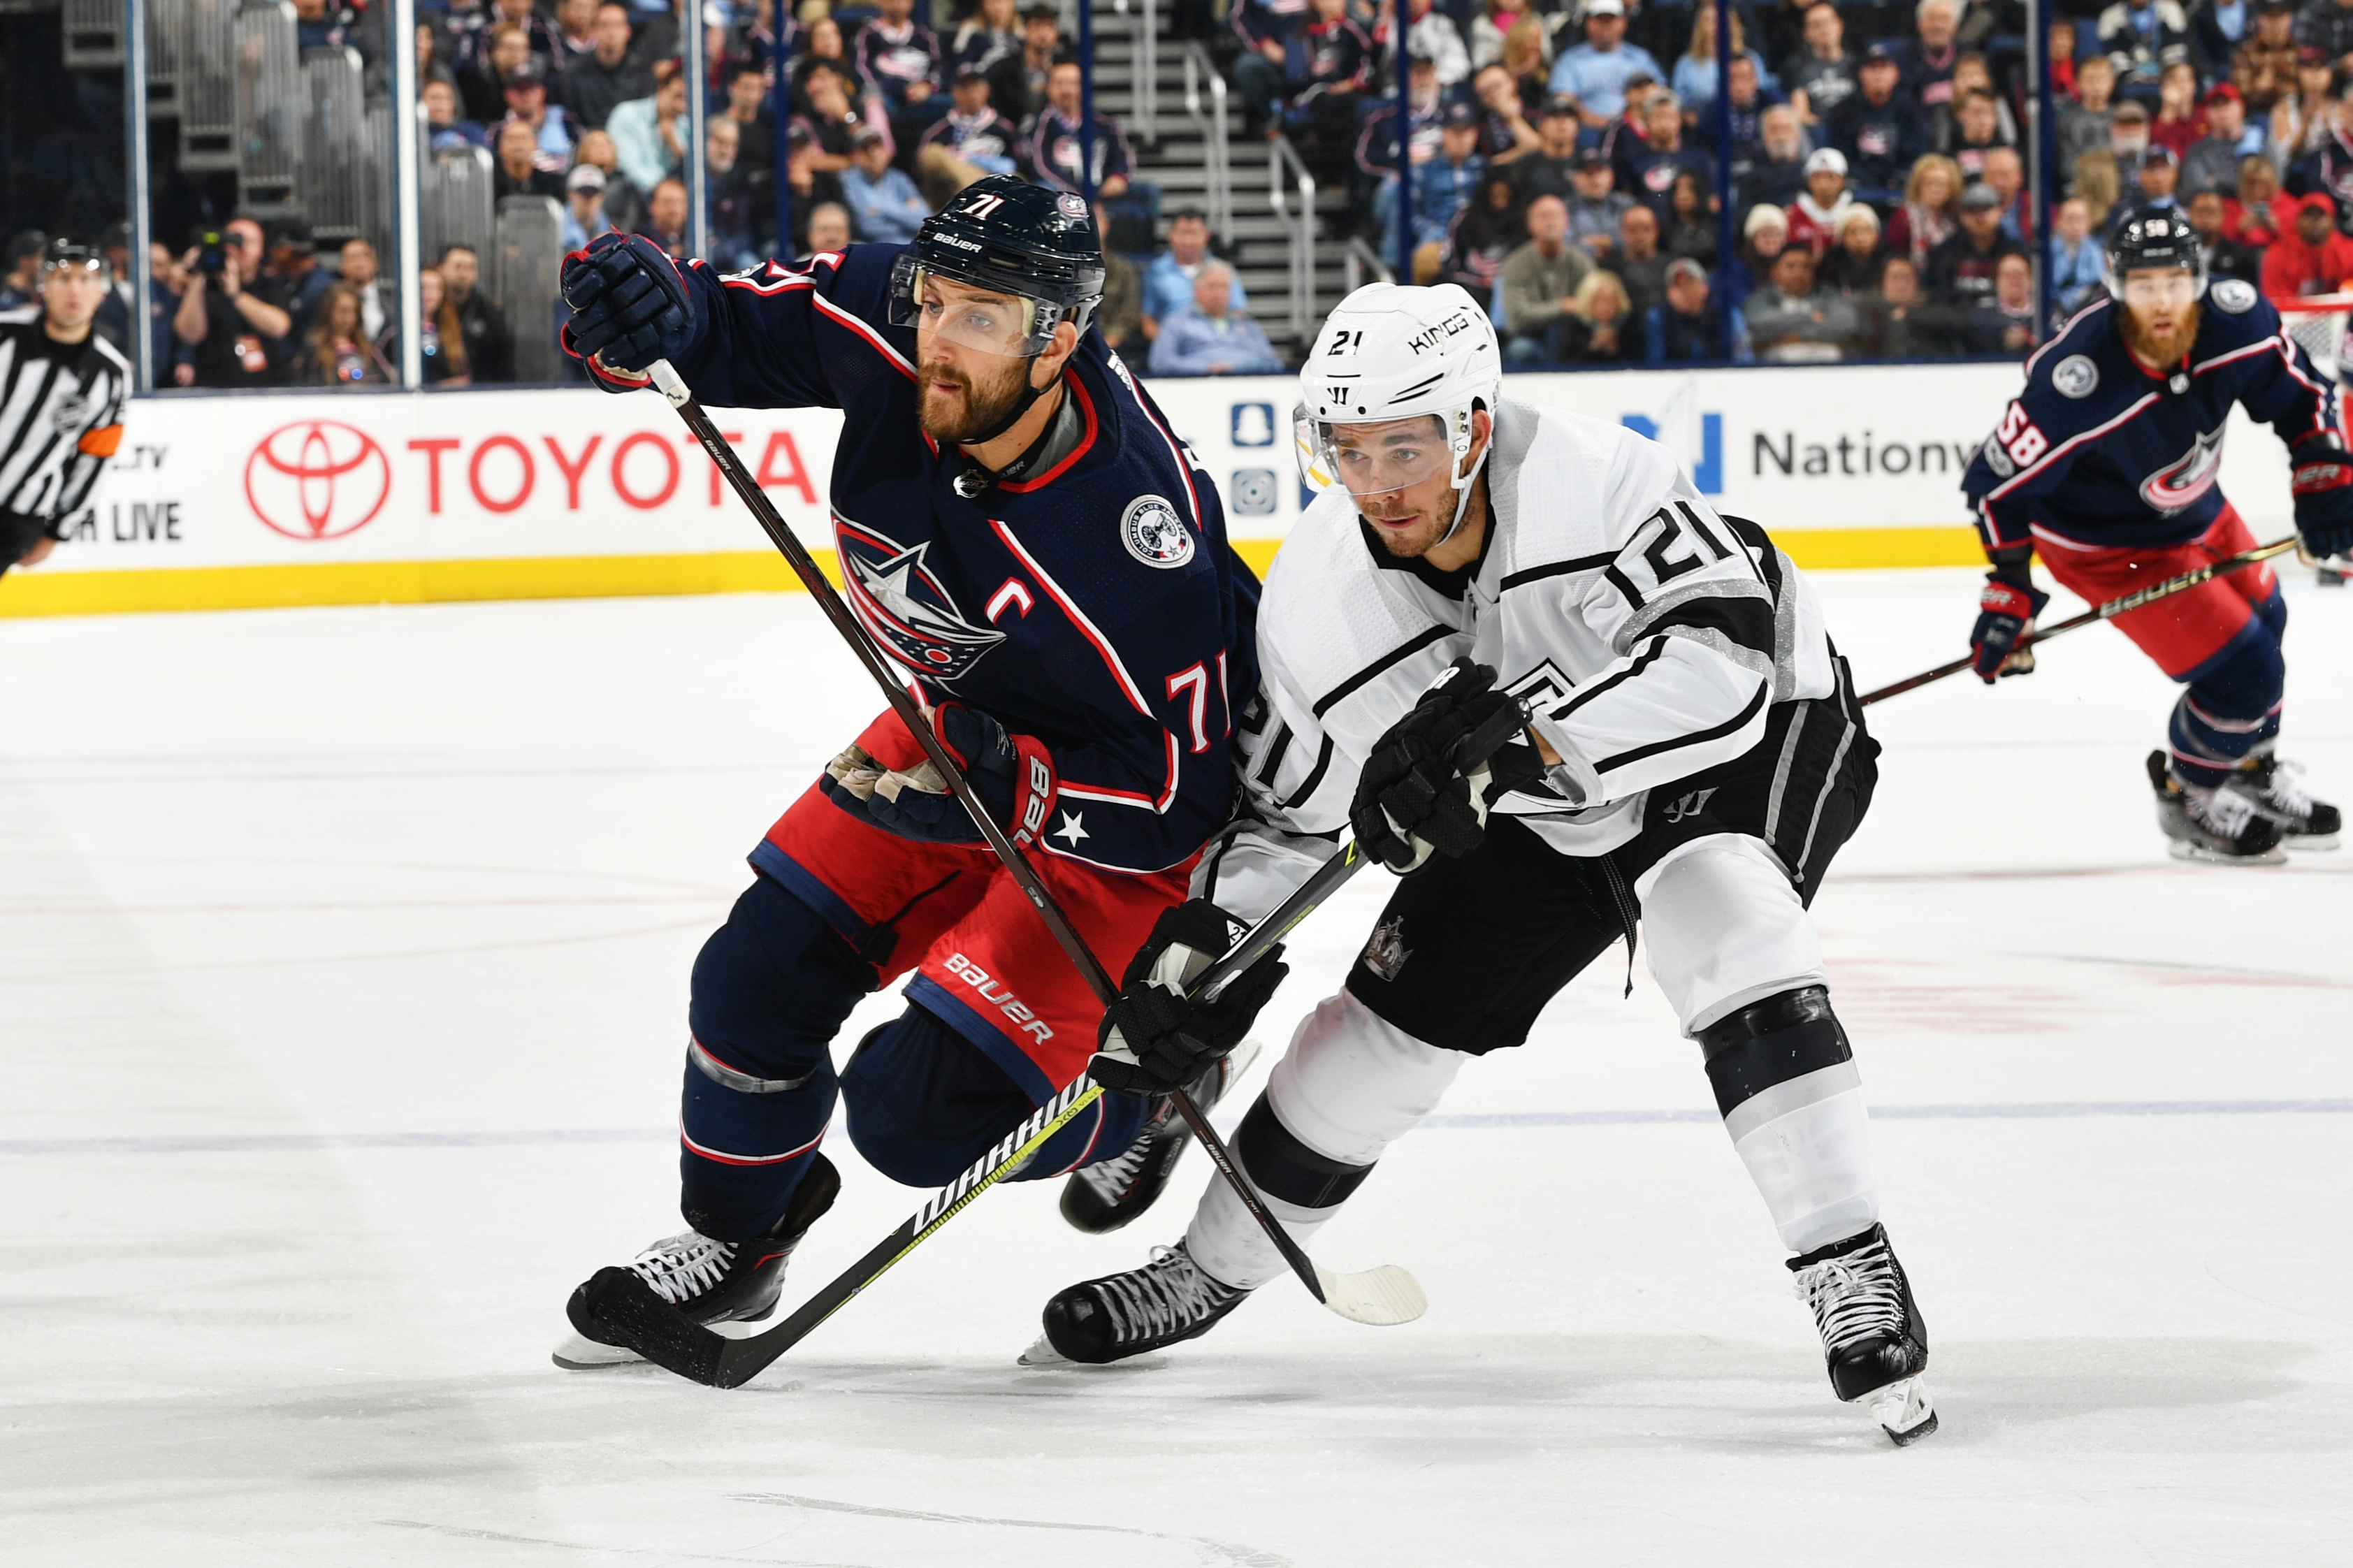 Columbus Blue Jackets vs. Kings: Players to watch, keys to victory ...